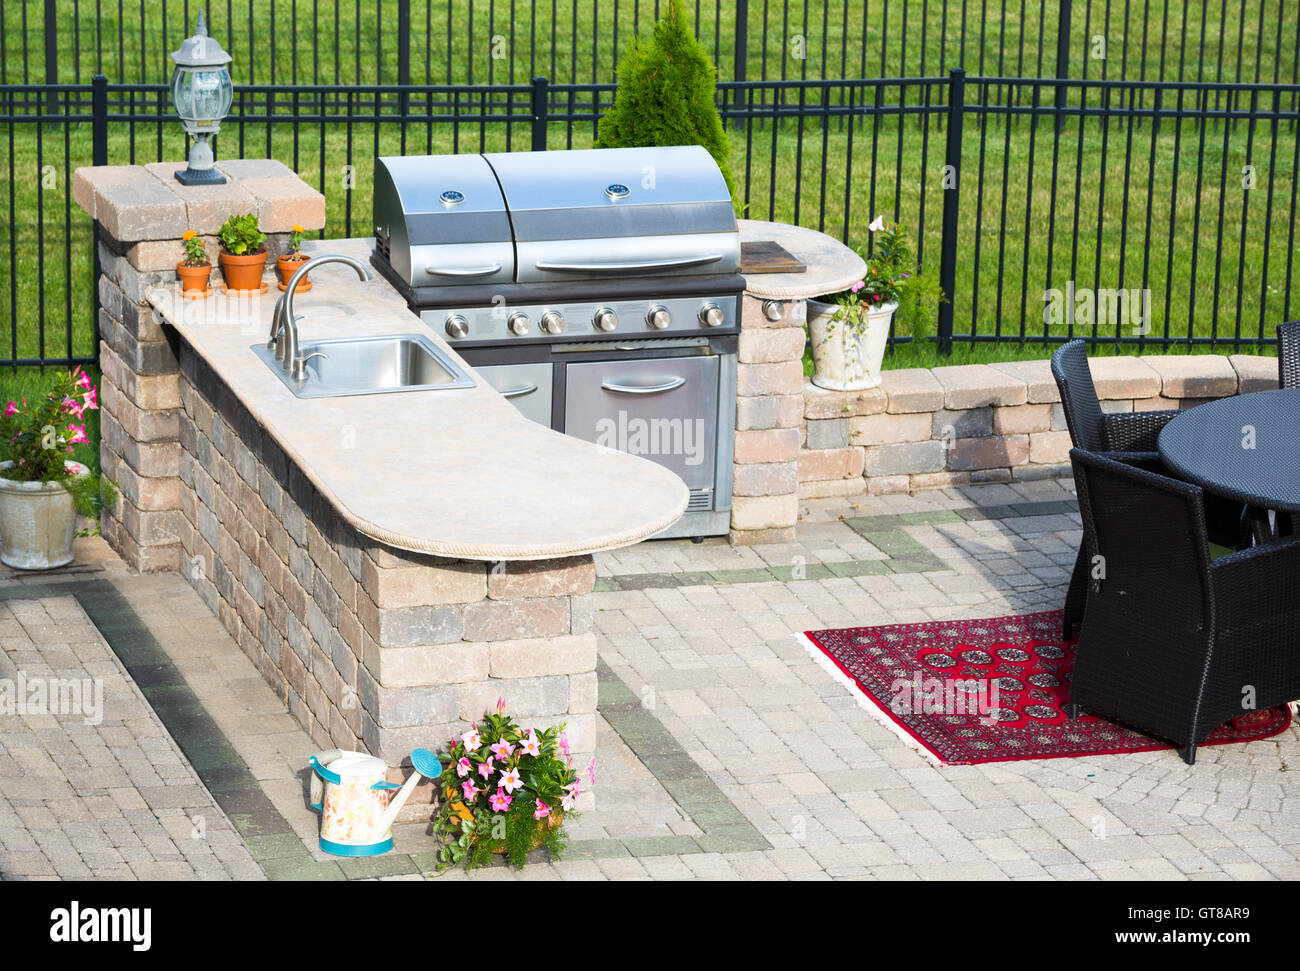 High Angle View Of A Stylish Outdoor Kitchen On A Brick Patio With A - Dining table with built in grill